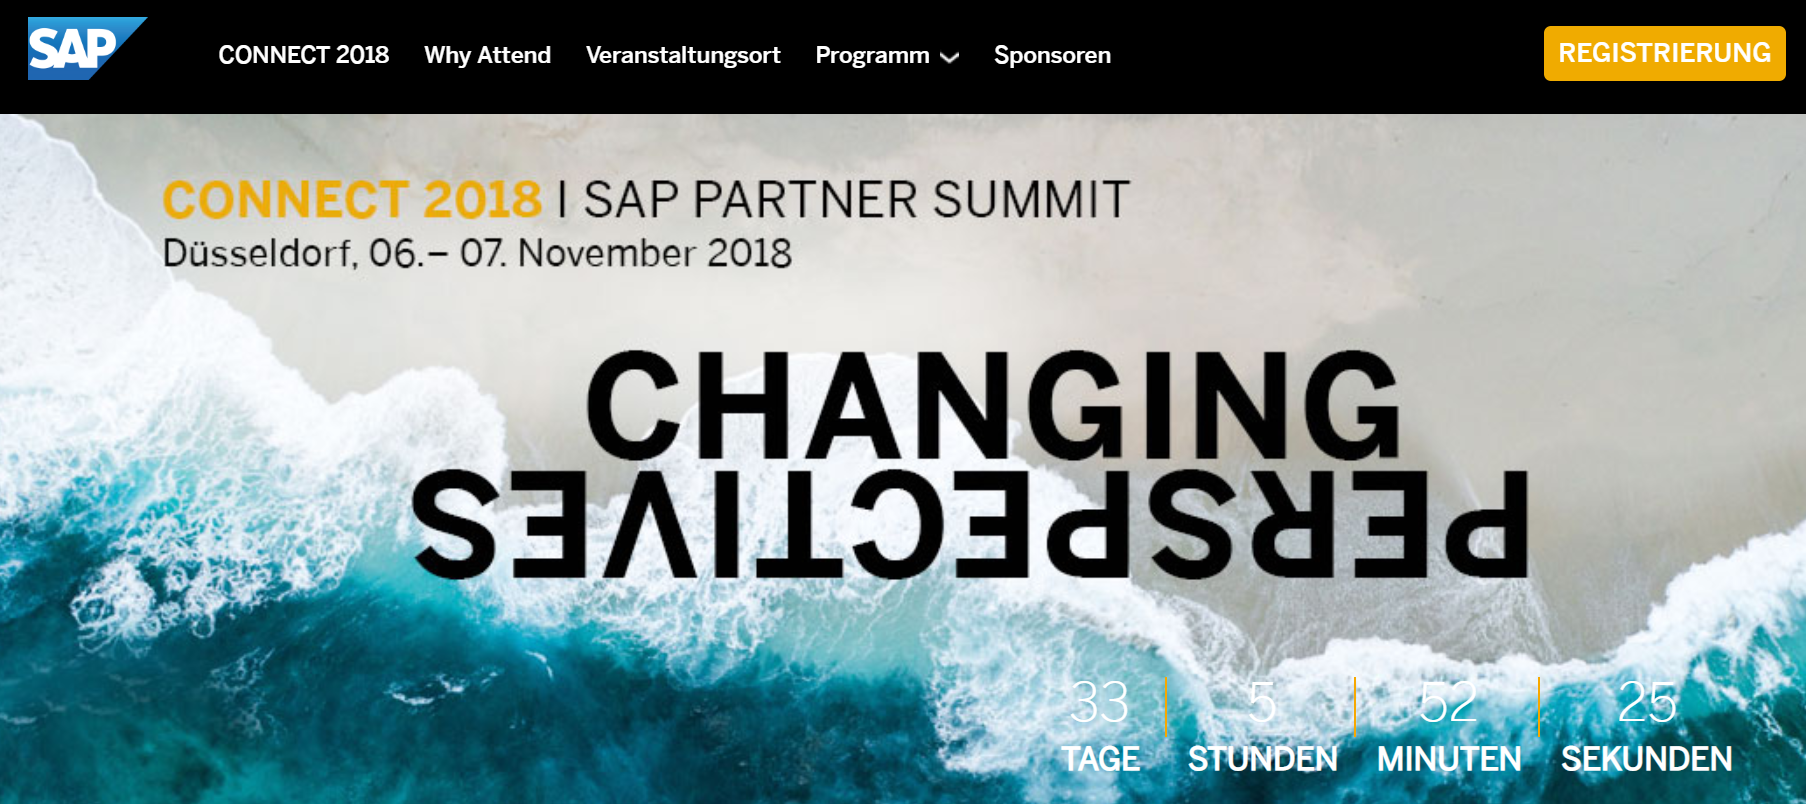 Open as App at key events on SAP and Digitization